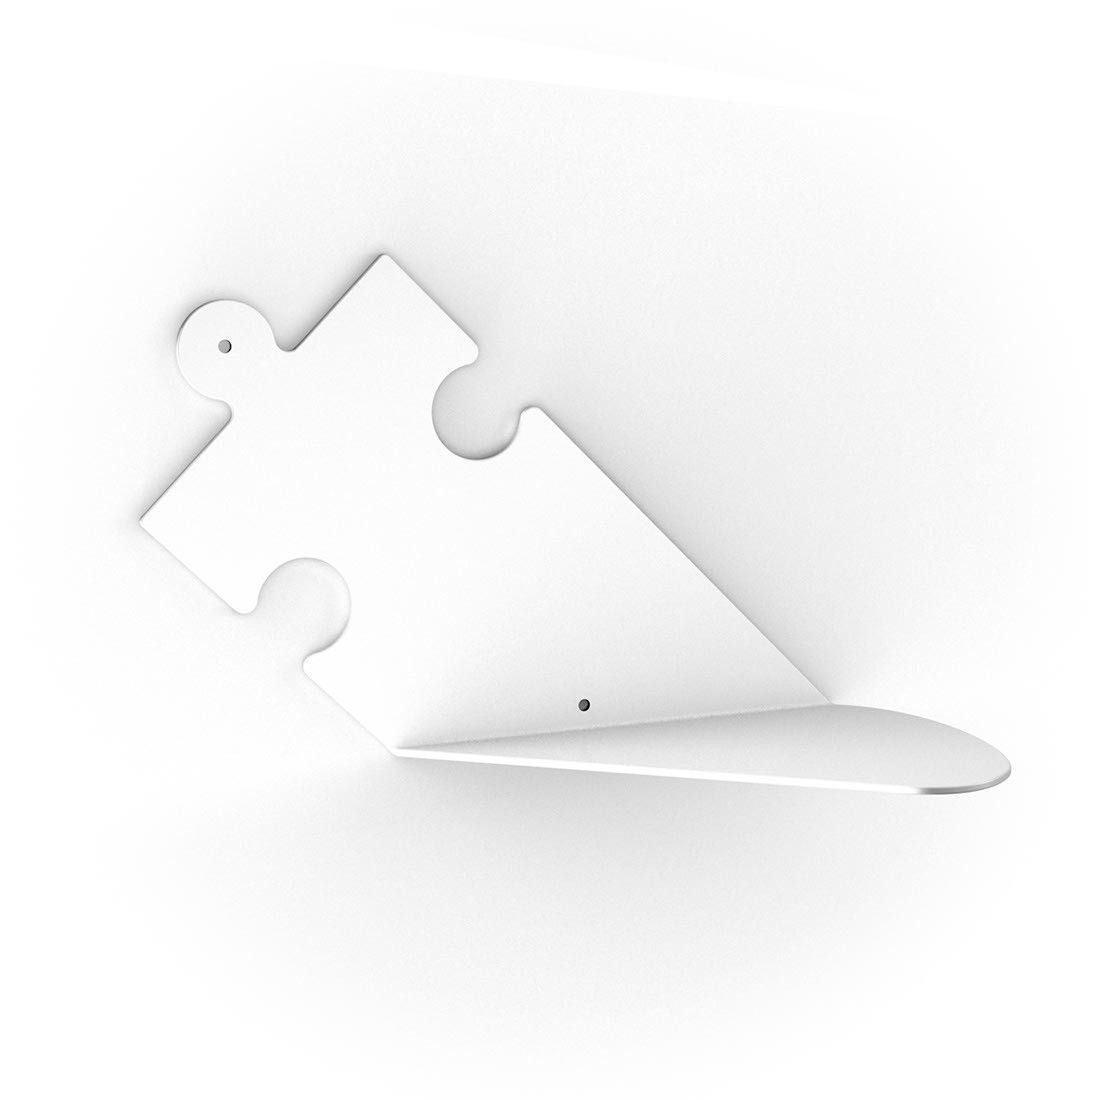 Free puzzle mensole moderne in acciaio with mensole in acciaio for Ikea mensole acciaio